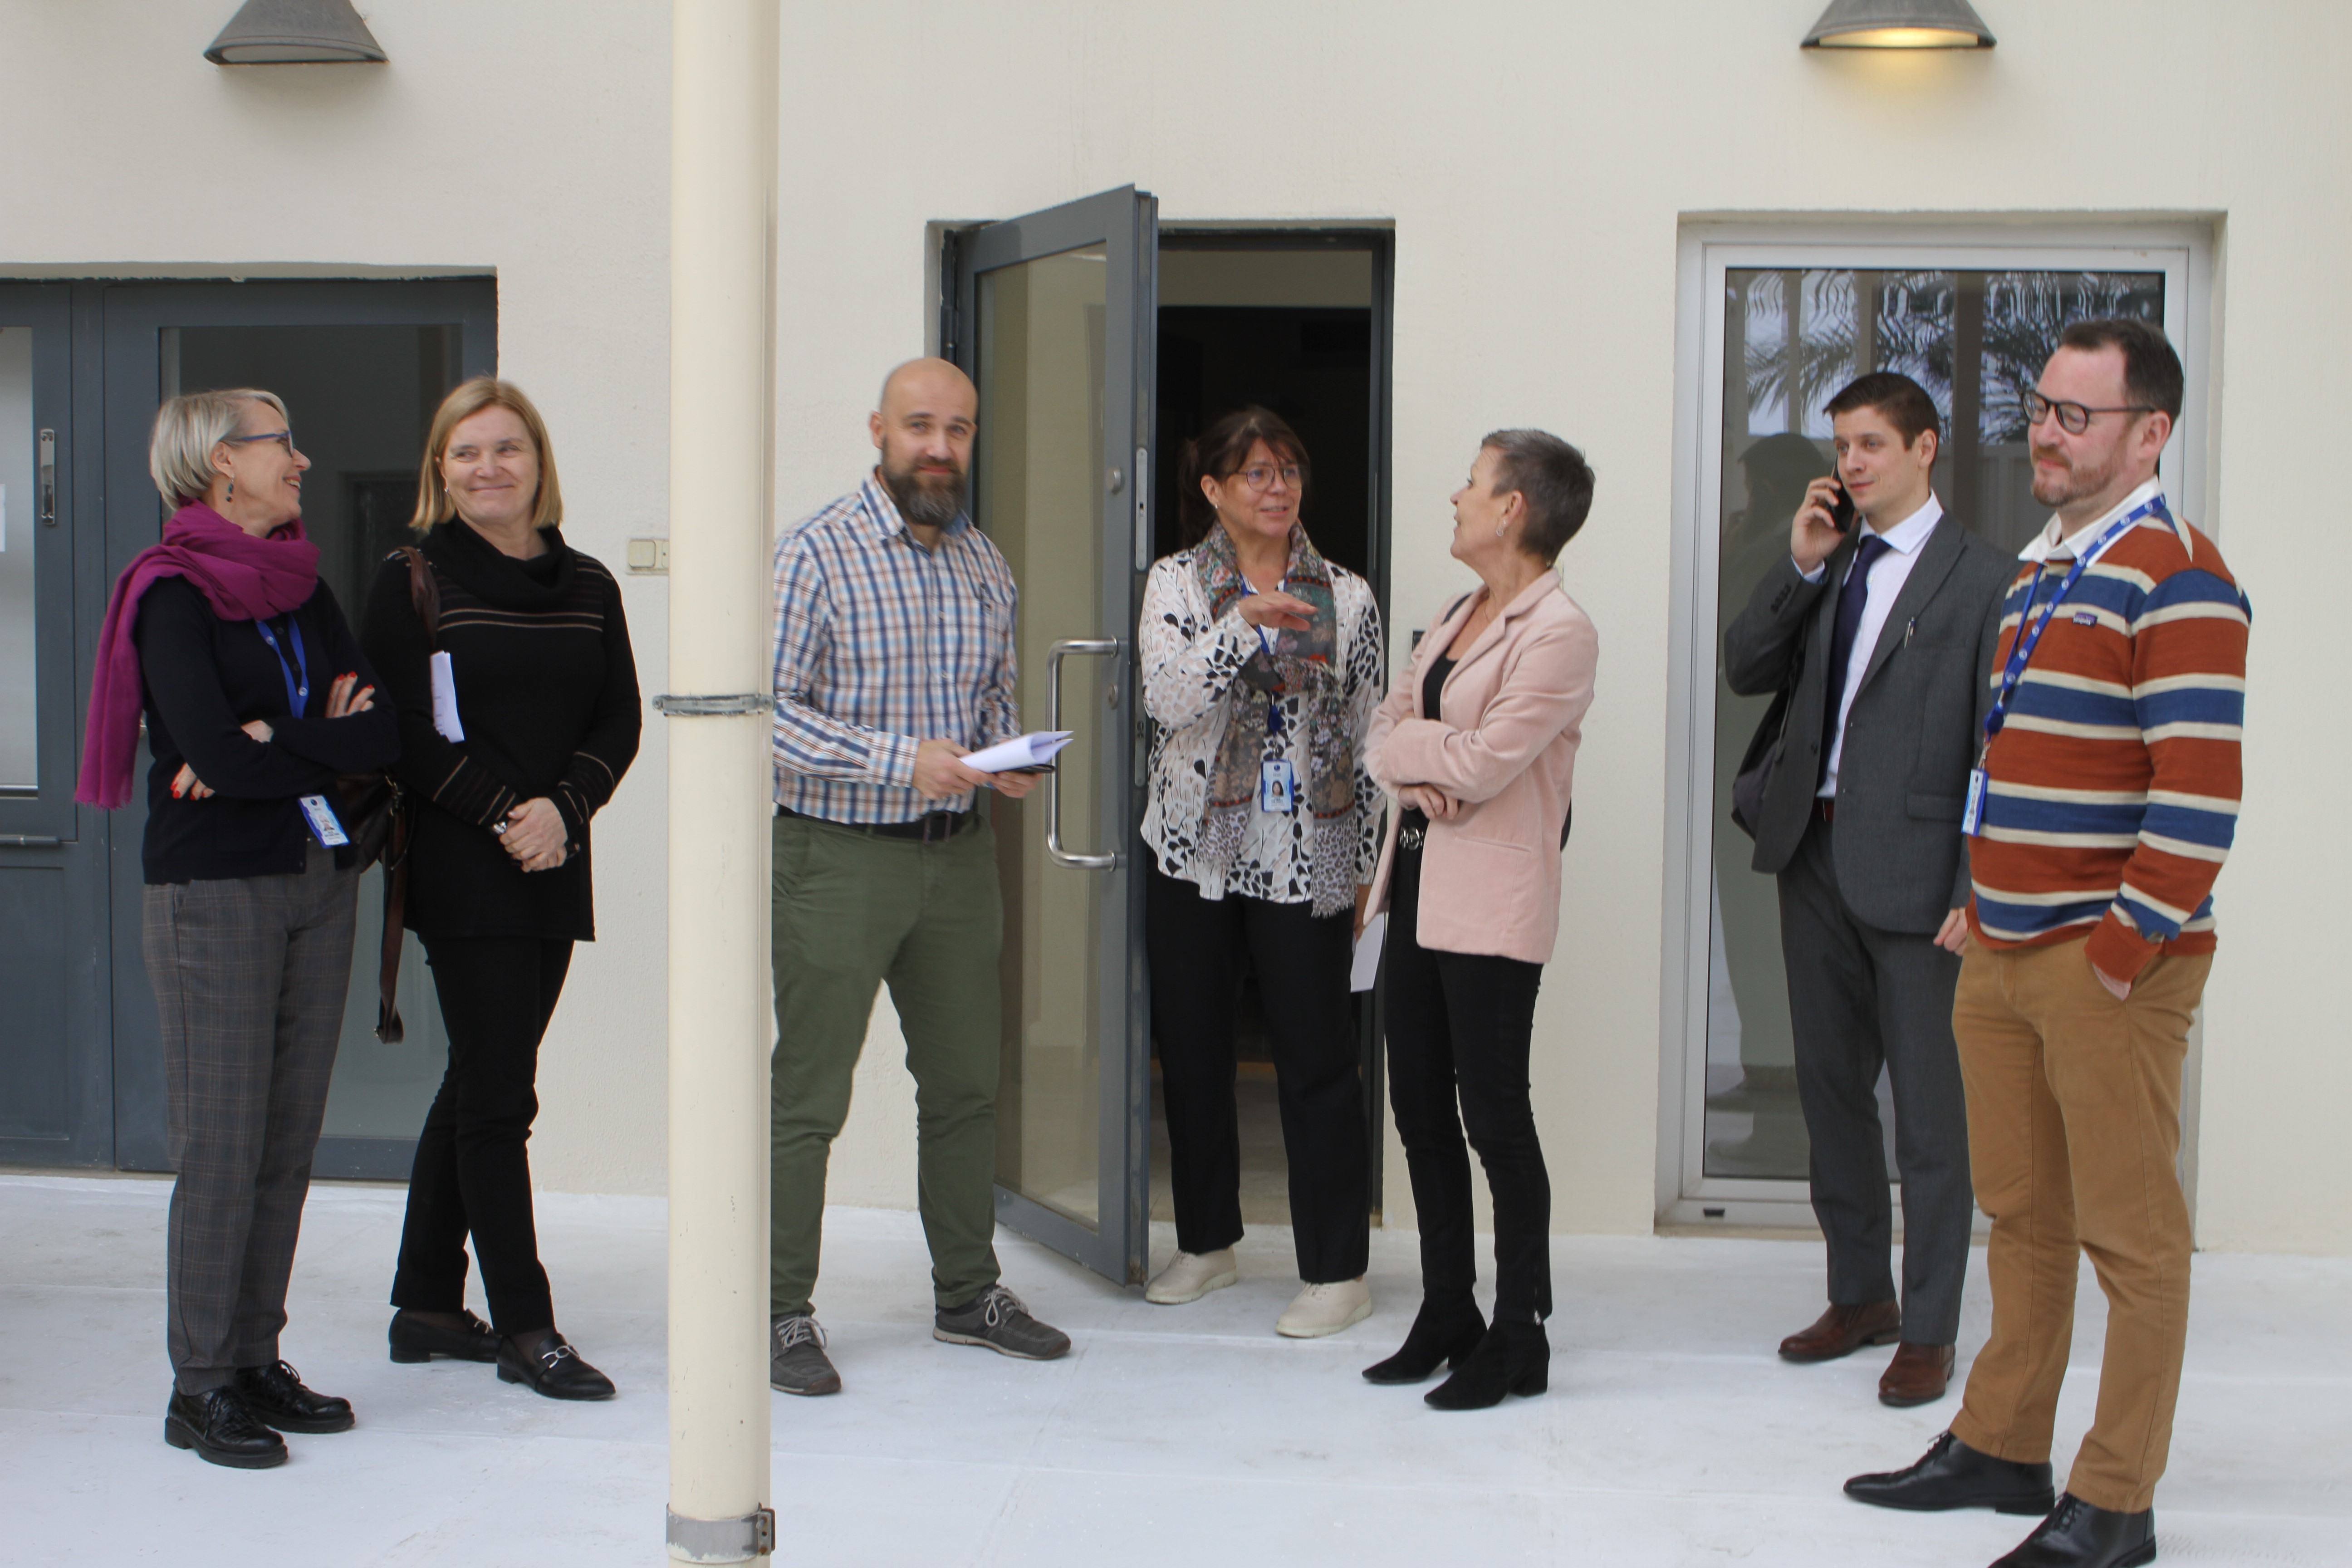 The first delegation from Finland to the Embassy on 9 December. Visitors from the Ministry for Foreign Affairs and the Finnish Immigration Service together with staff of the mission. Photo: Vesa Häkkinen.